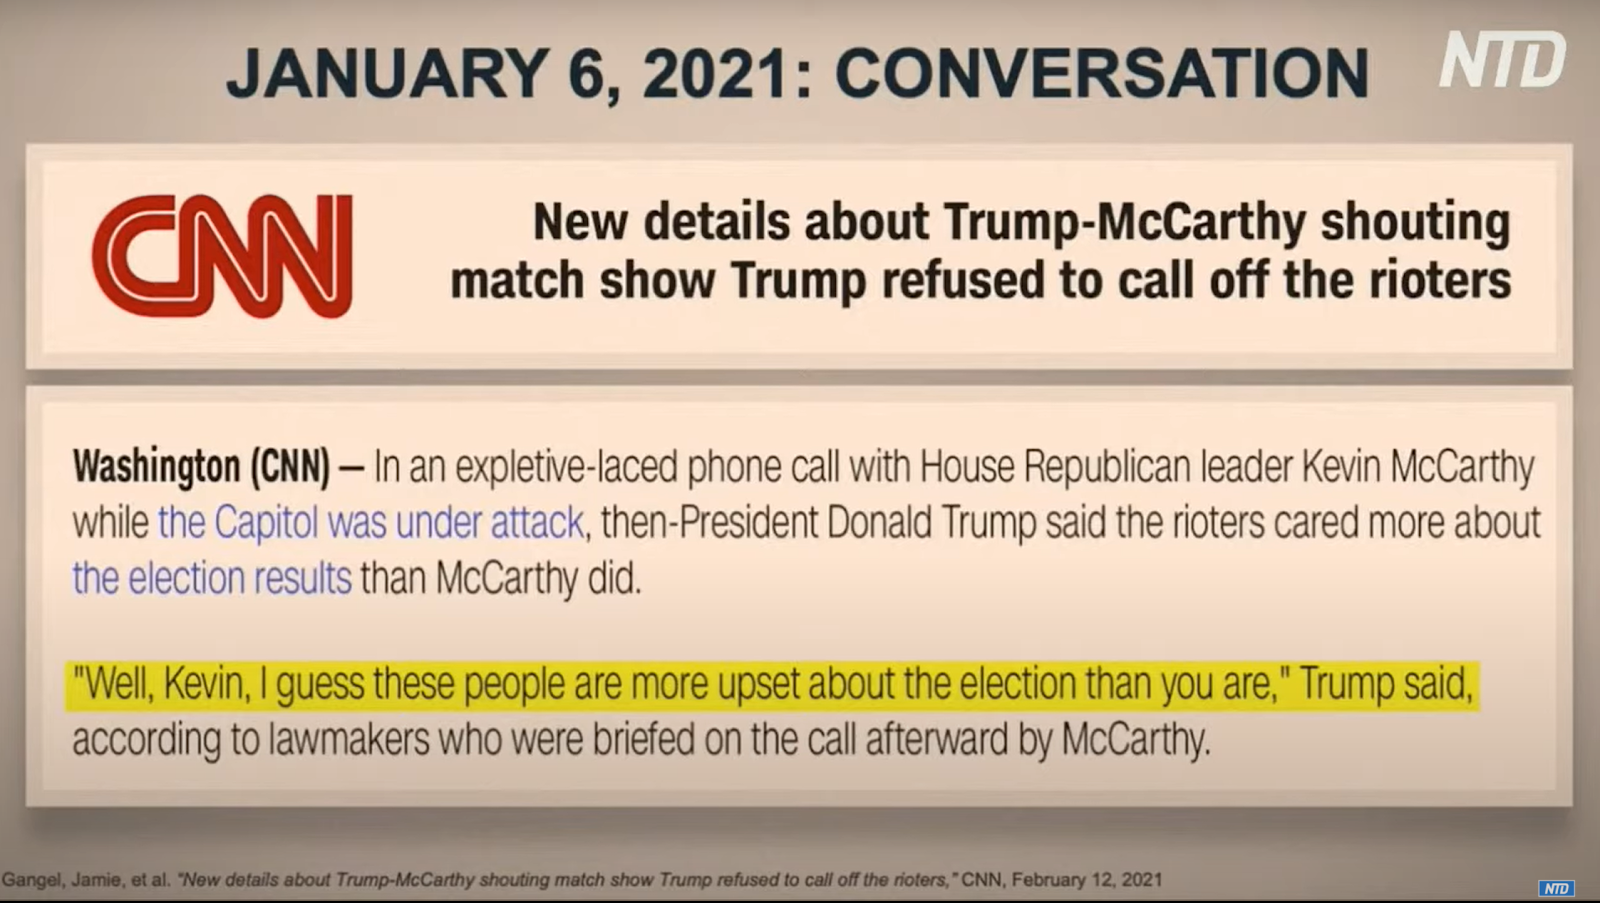 Screenshot of a story by CNN produced on Feb. 12, the previous day, containing hearsay from Rep. Jamie Herrera Beutler (R-WA) about an alleged conversation which took place between House Minority Leader Rep. Kevin McCarthy (R-CA) the day of the riots.